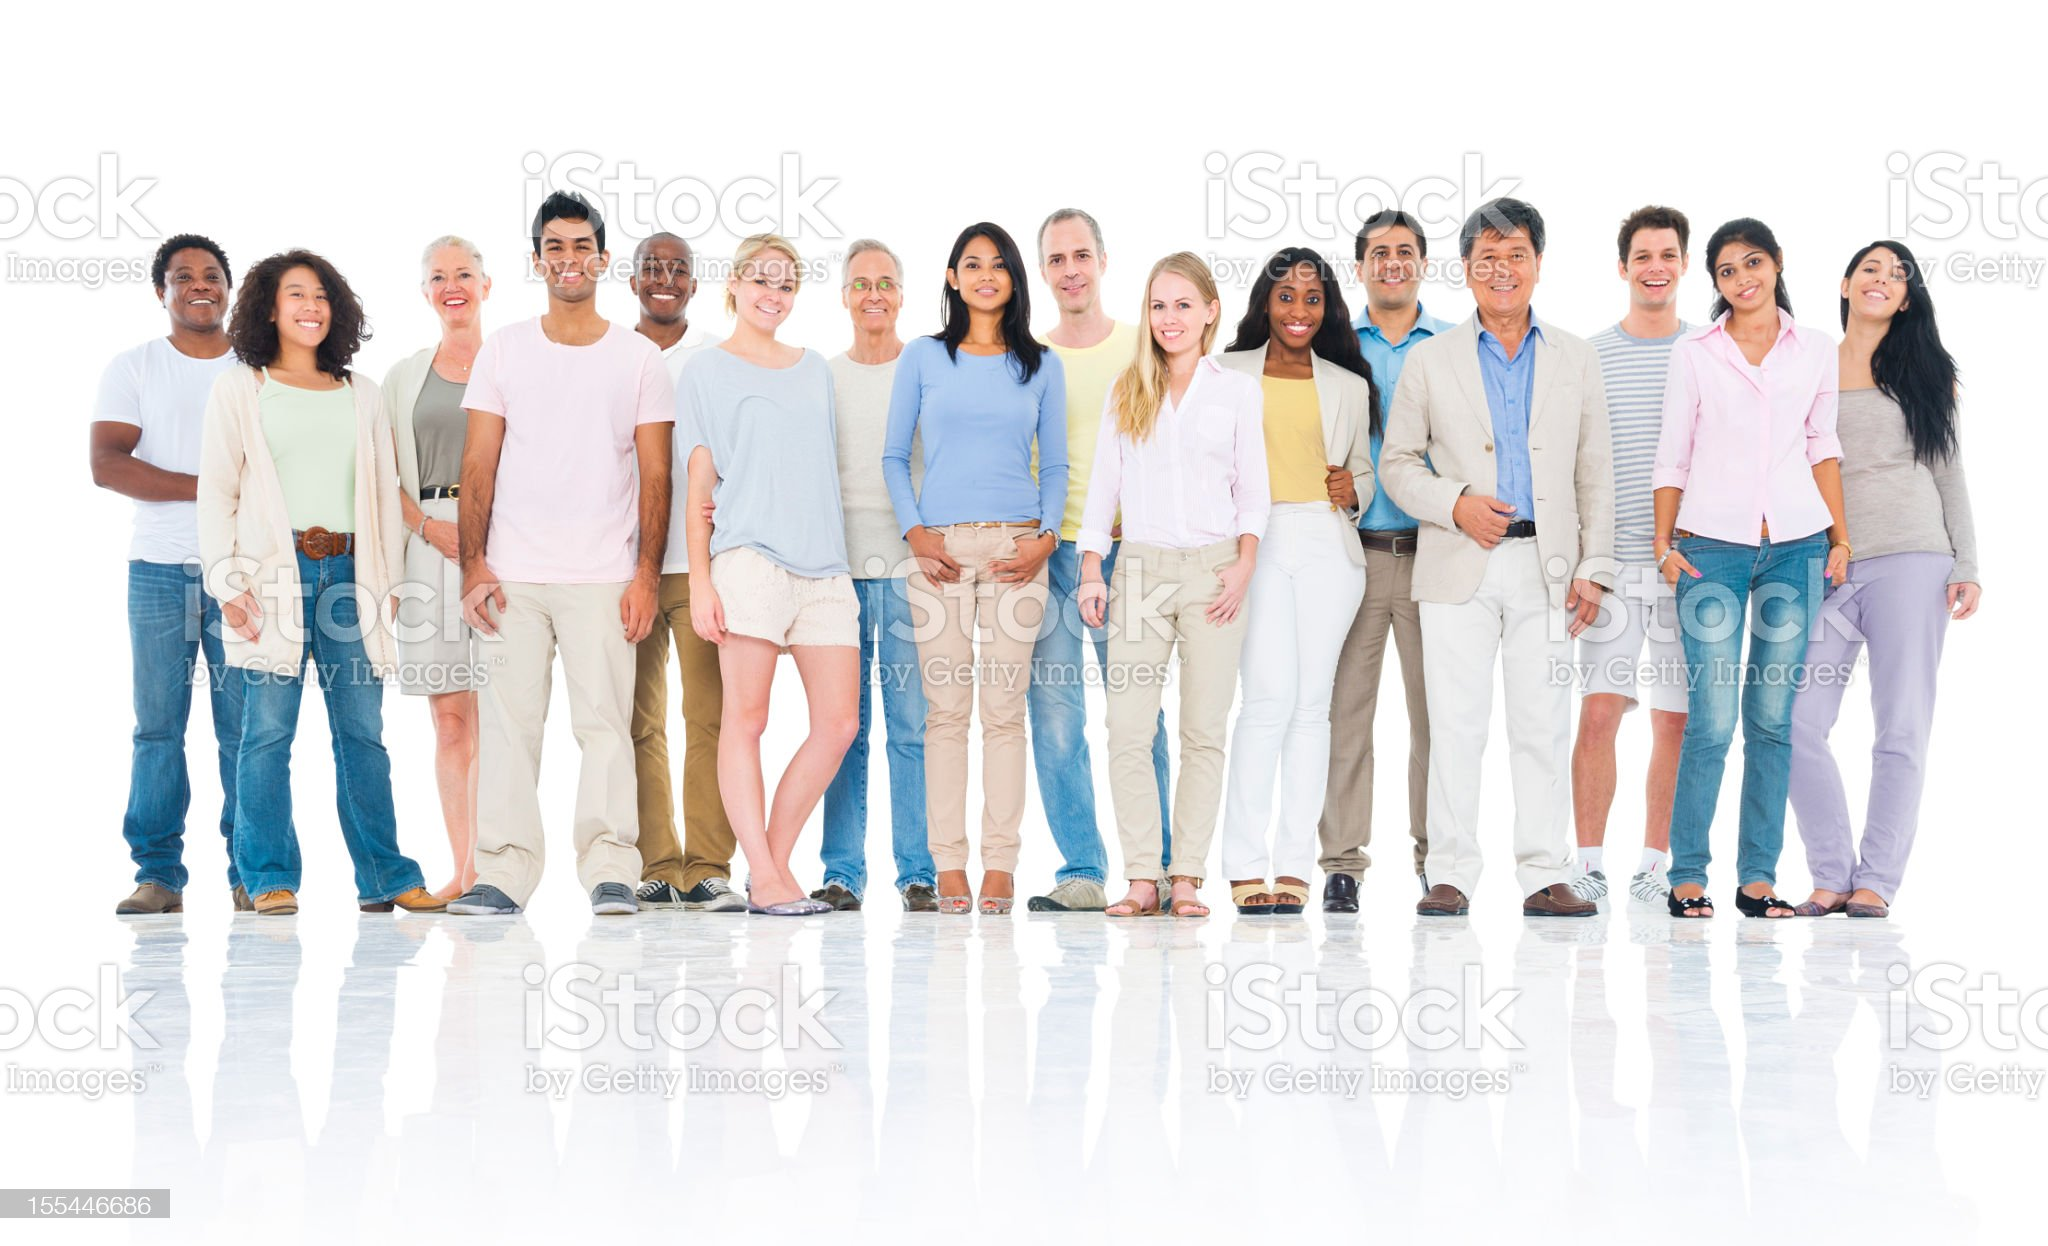 Diverse group of causal individuals royalty-free stock photo